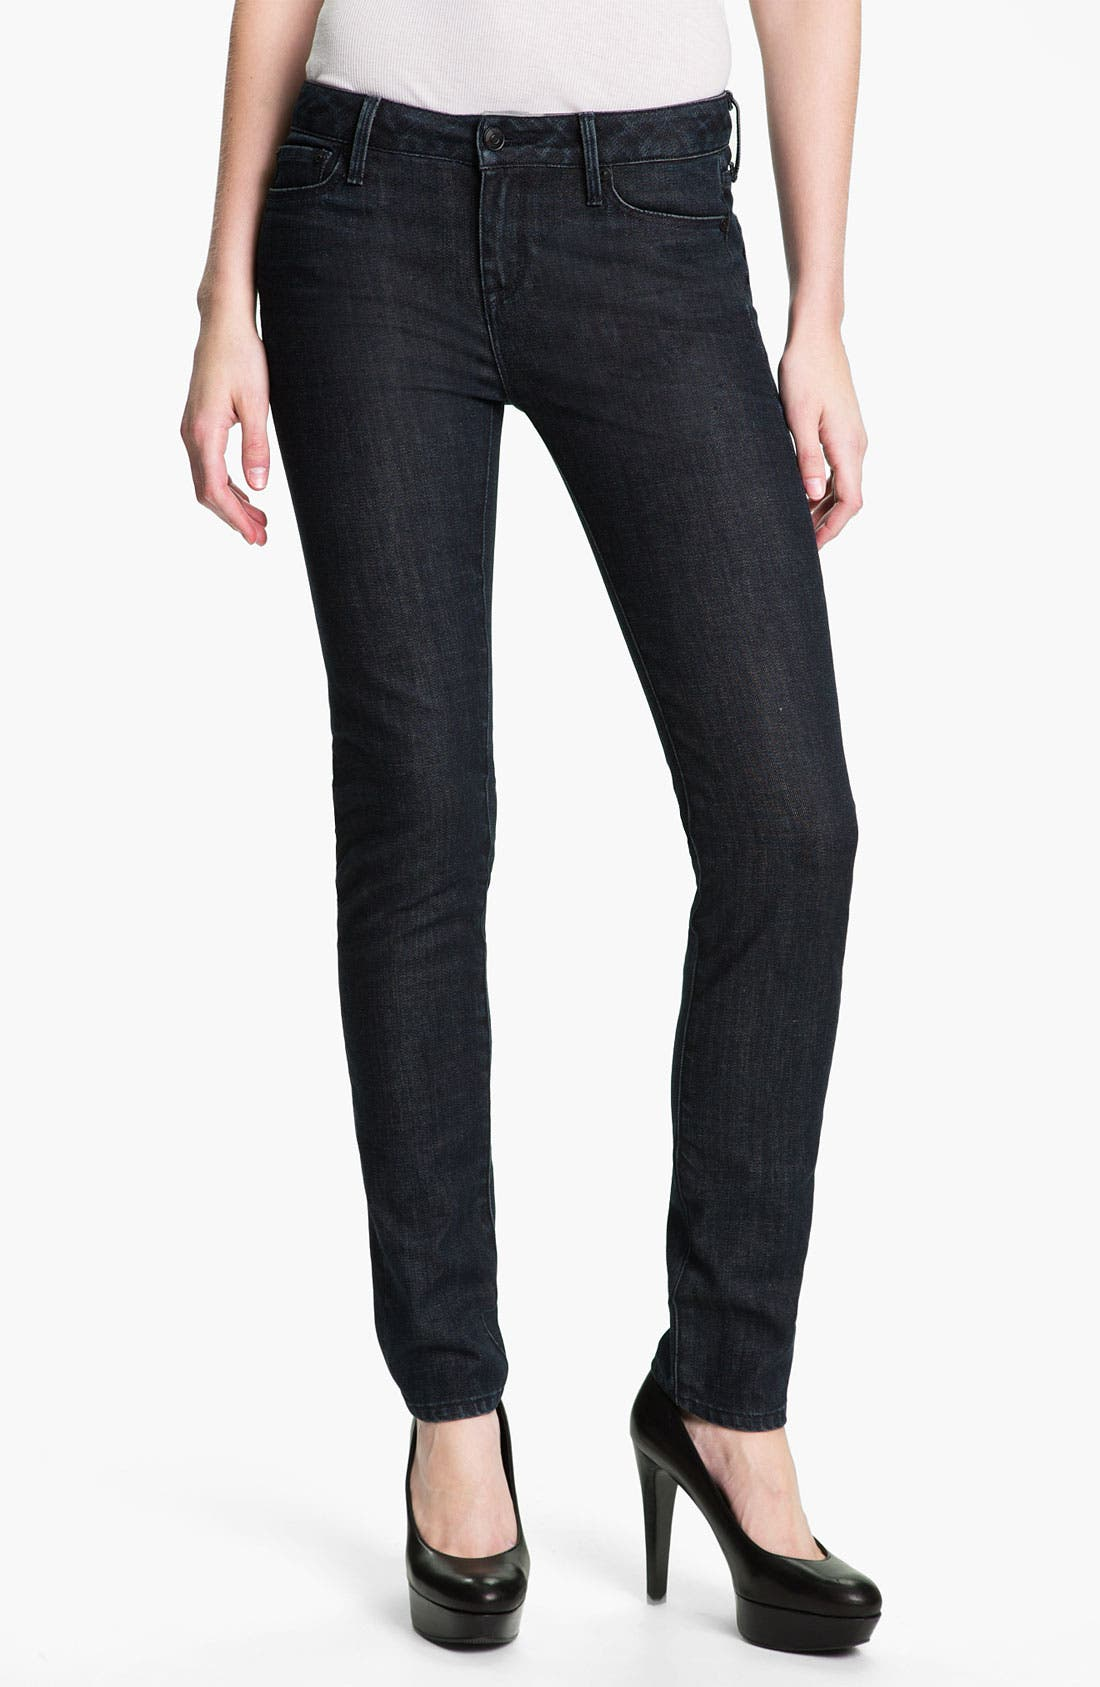 Alternate Image 1 Selected - Vince Stretch Skinny Jeans (Dark Vintage)